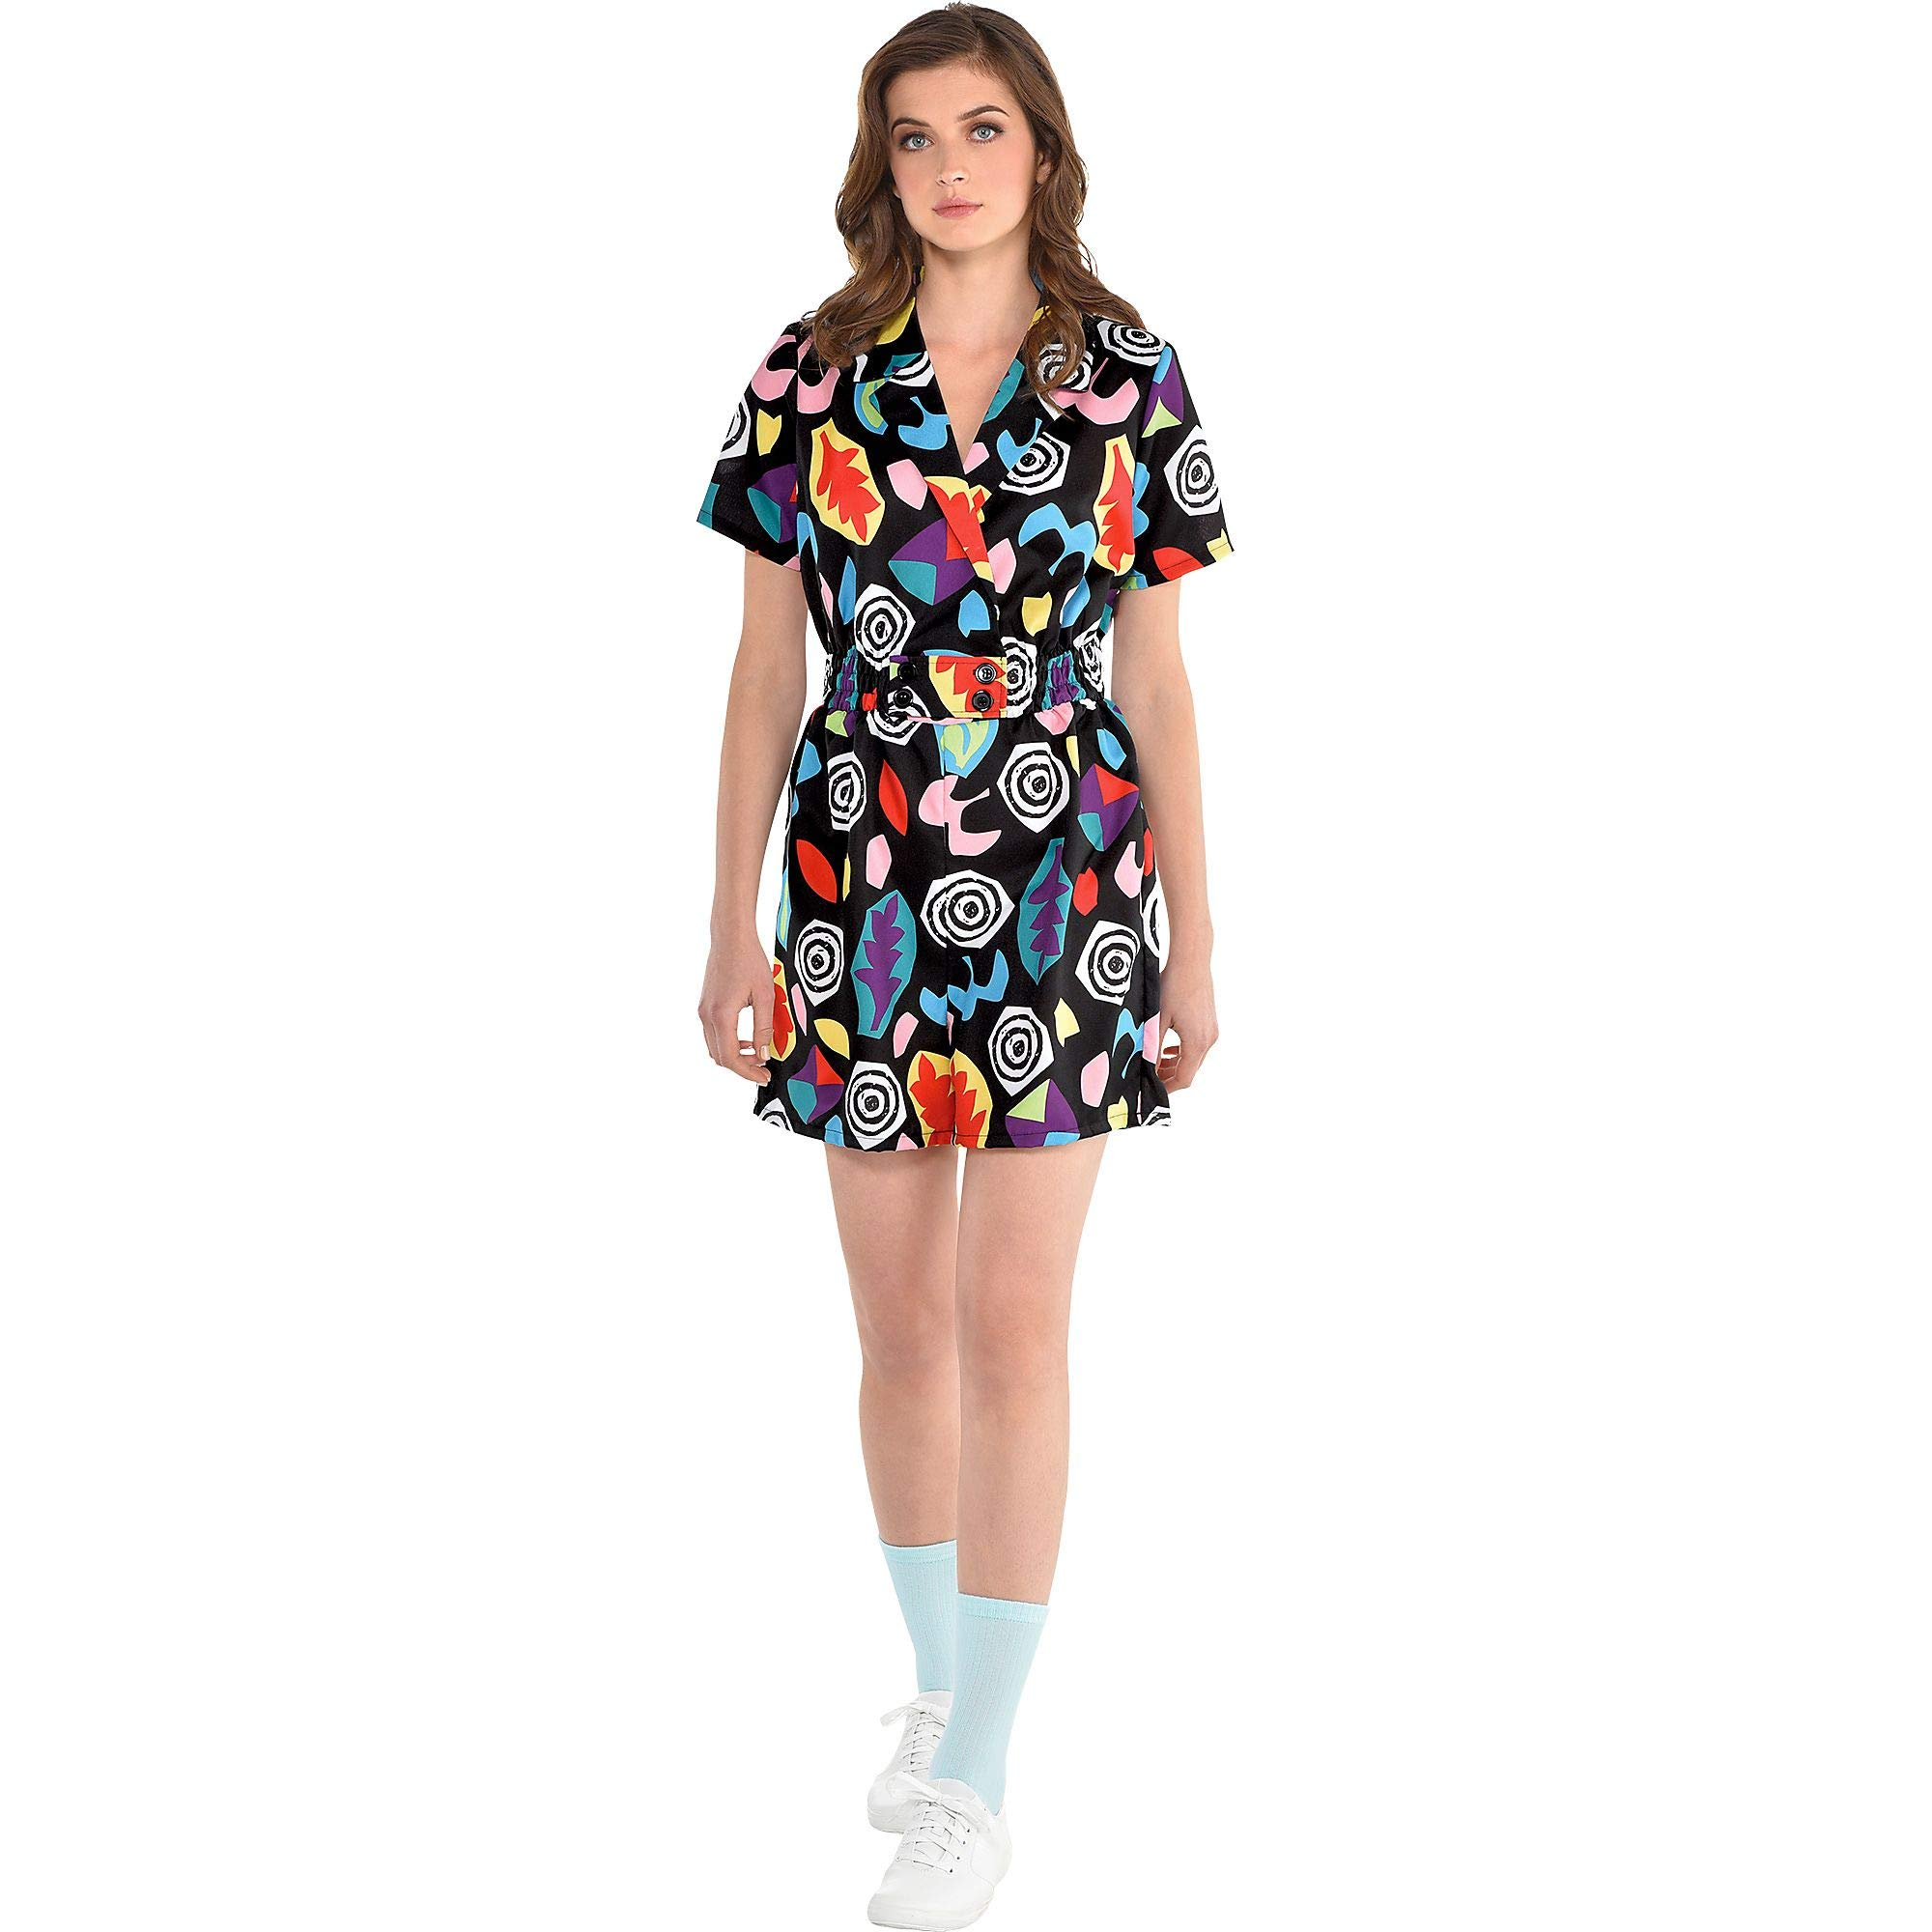 Party City Stranger Things Mall Eleven Costume for Adults, Size Small/Medium, Features a Colorful Short-Sleeve Romper